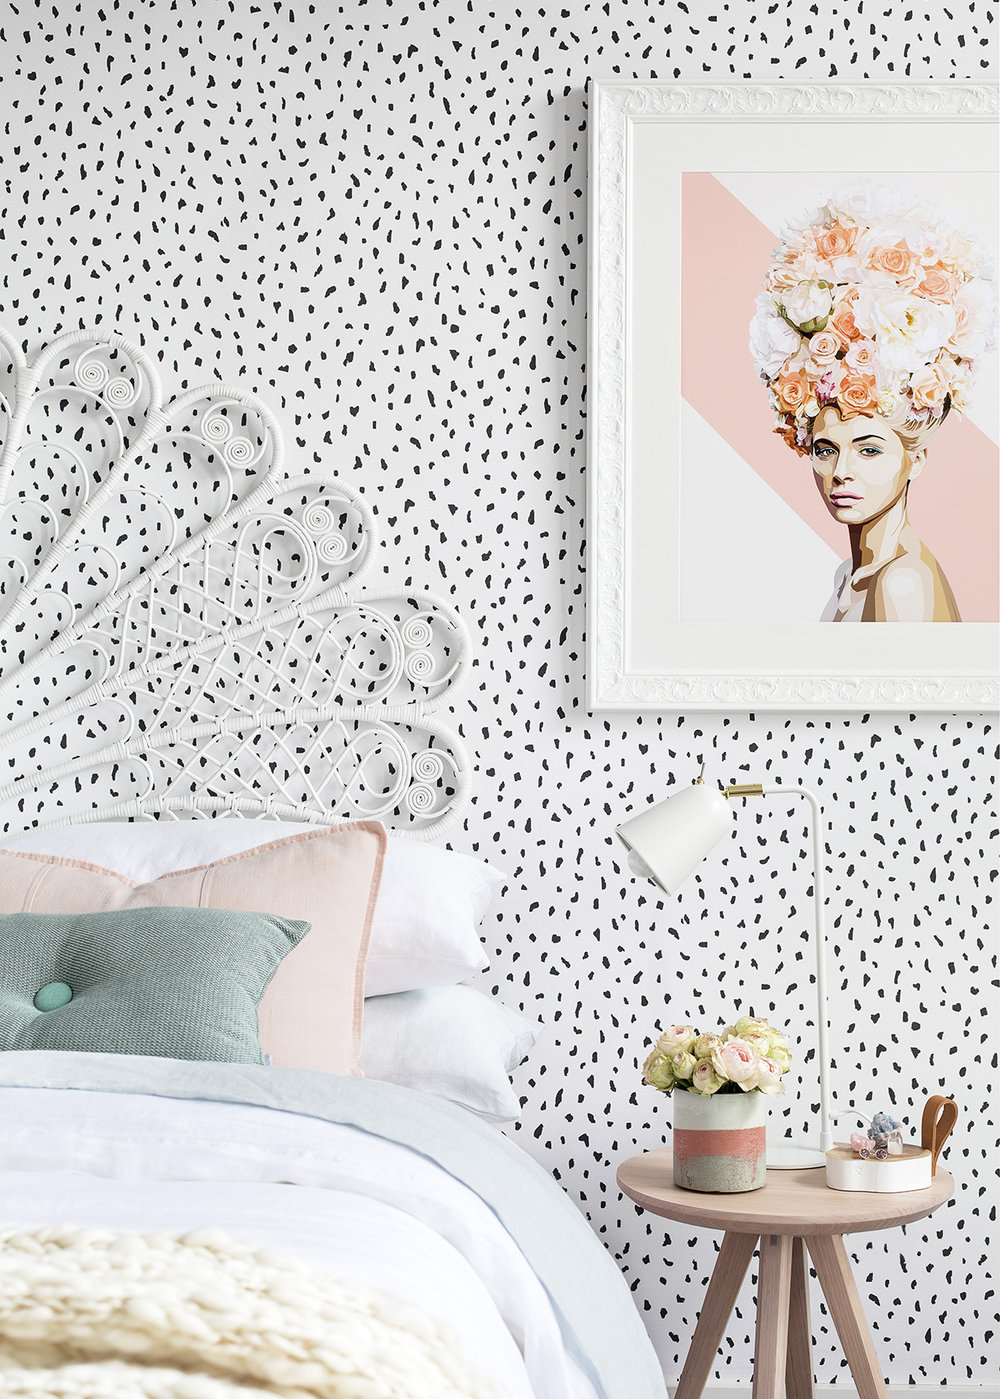 Photography: Martina Gemmola  /  Styling + Interior: Michelle Hart, Bask Interiors